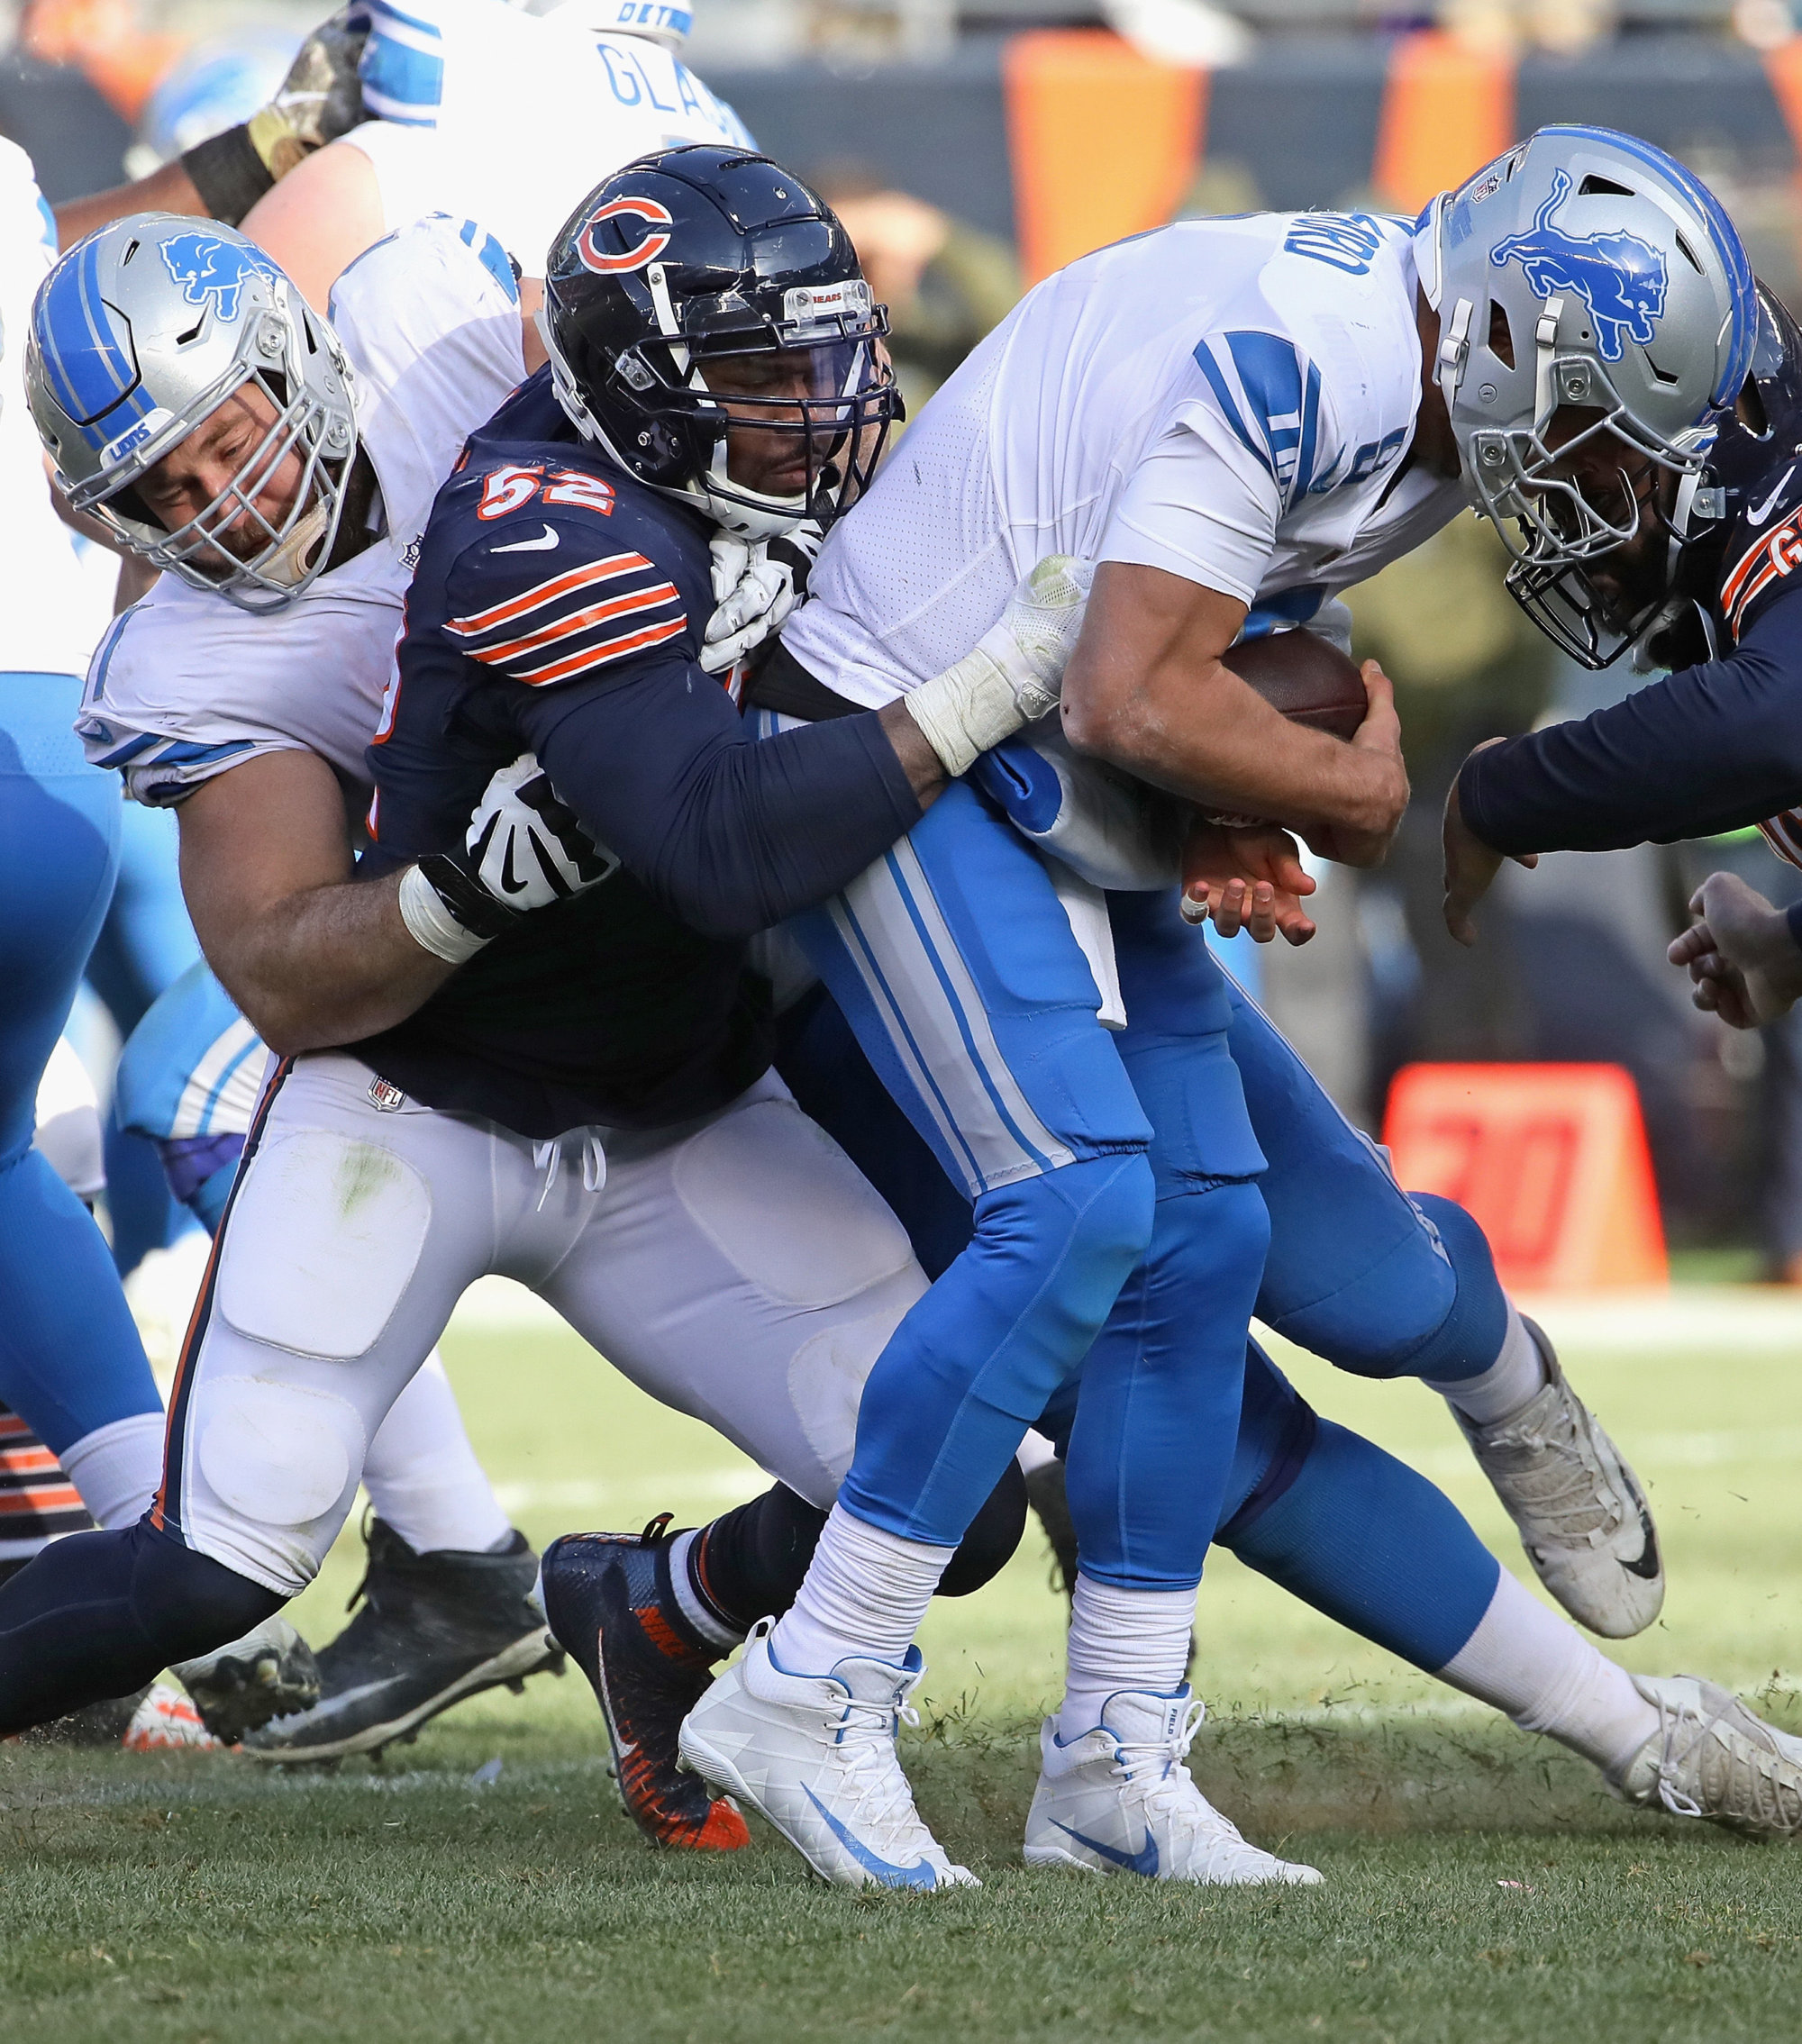 CHICAGO, IL - NOVEMBER 11:  Khalil Mack #52 of the Chicago Bears scks Matthew Stafford #9 of the Detroit Lions at Soldier Field on November 11, 2018 in Chicago, Illinois. The Bears defeated the Lions 34-22.  (Photo by Jonathan Daniel/Getty Images)